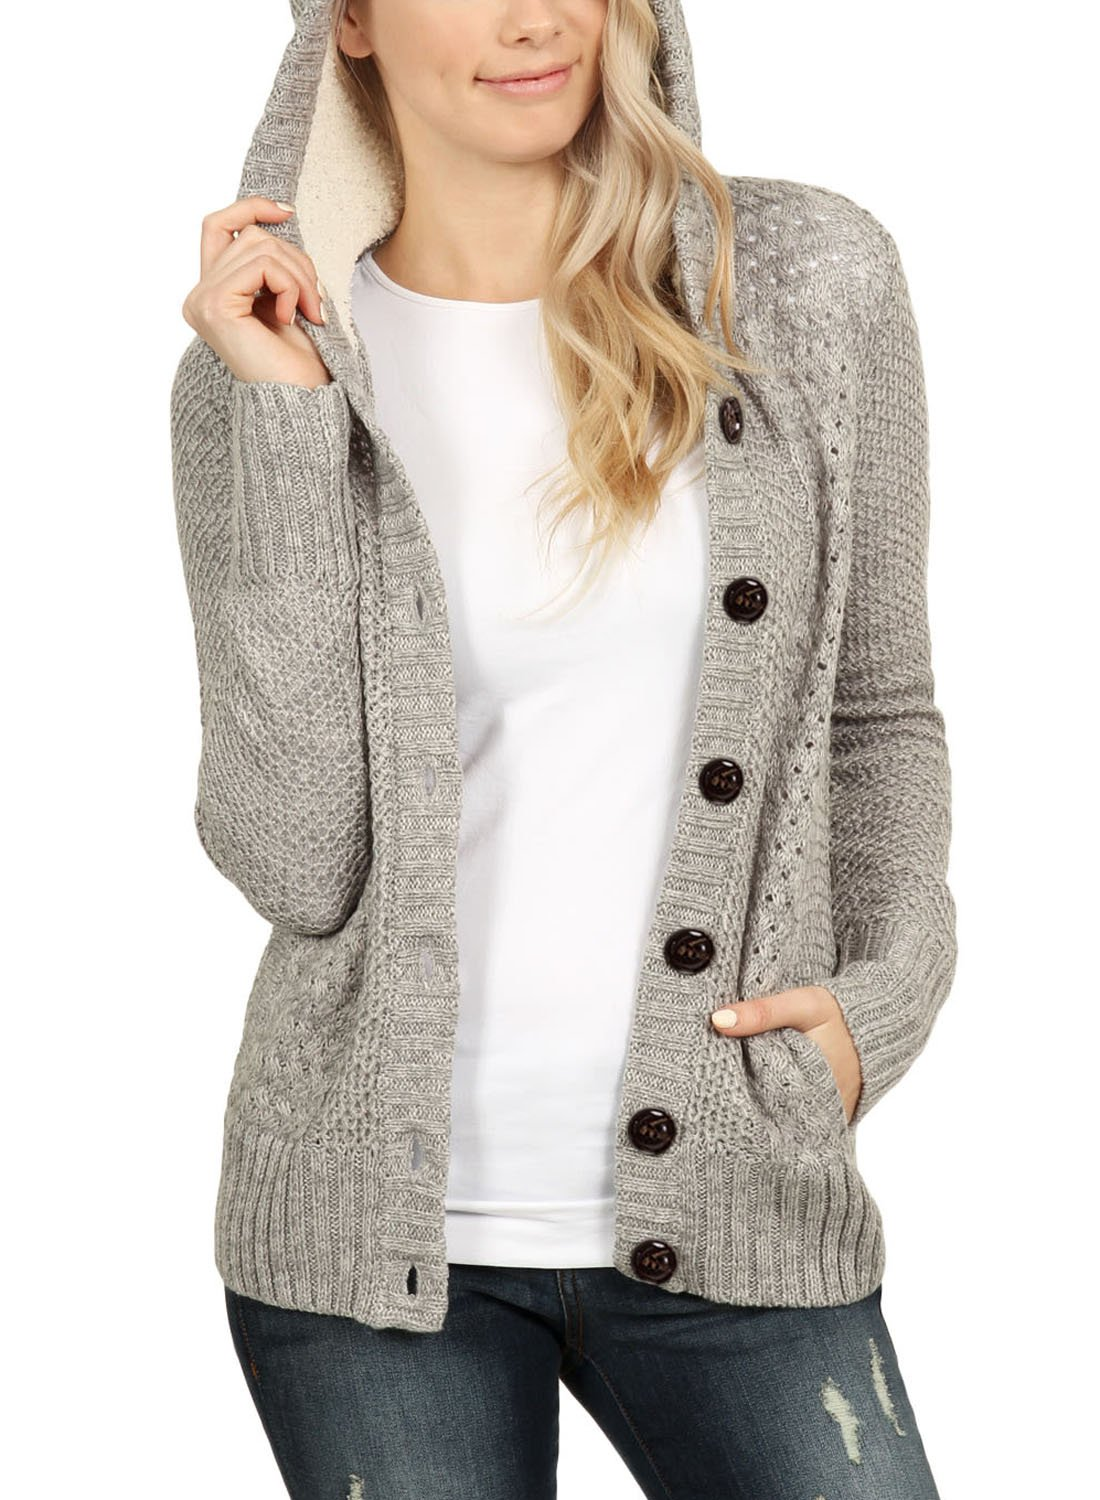 ROSKIKI Womens Button Dowm Hoodie Cardigans with Pockets Autumn Ribbed Knit Open Front Long Sleeve Thick Warm Juniors Pullover Sweater Coats Grey L